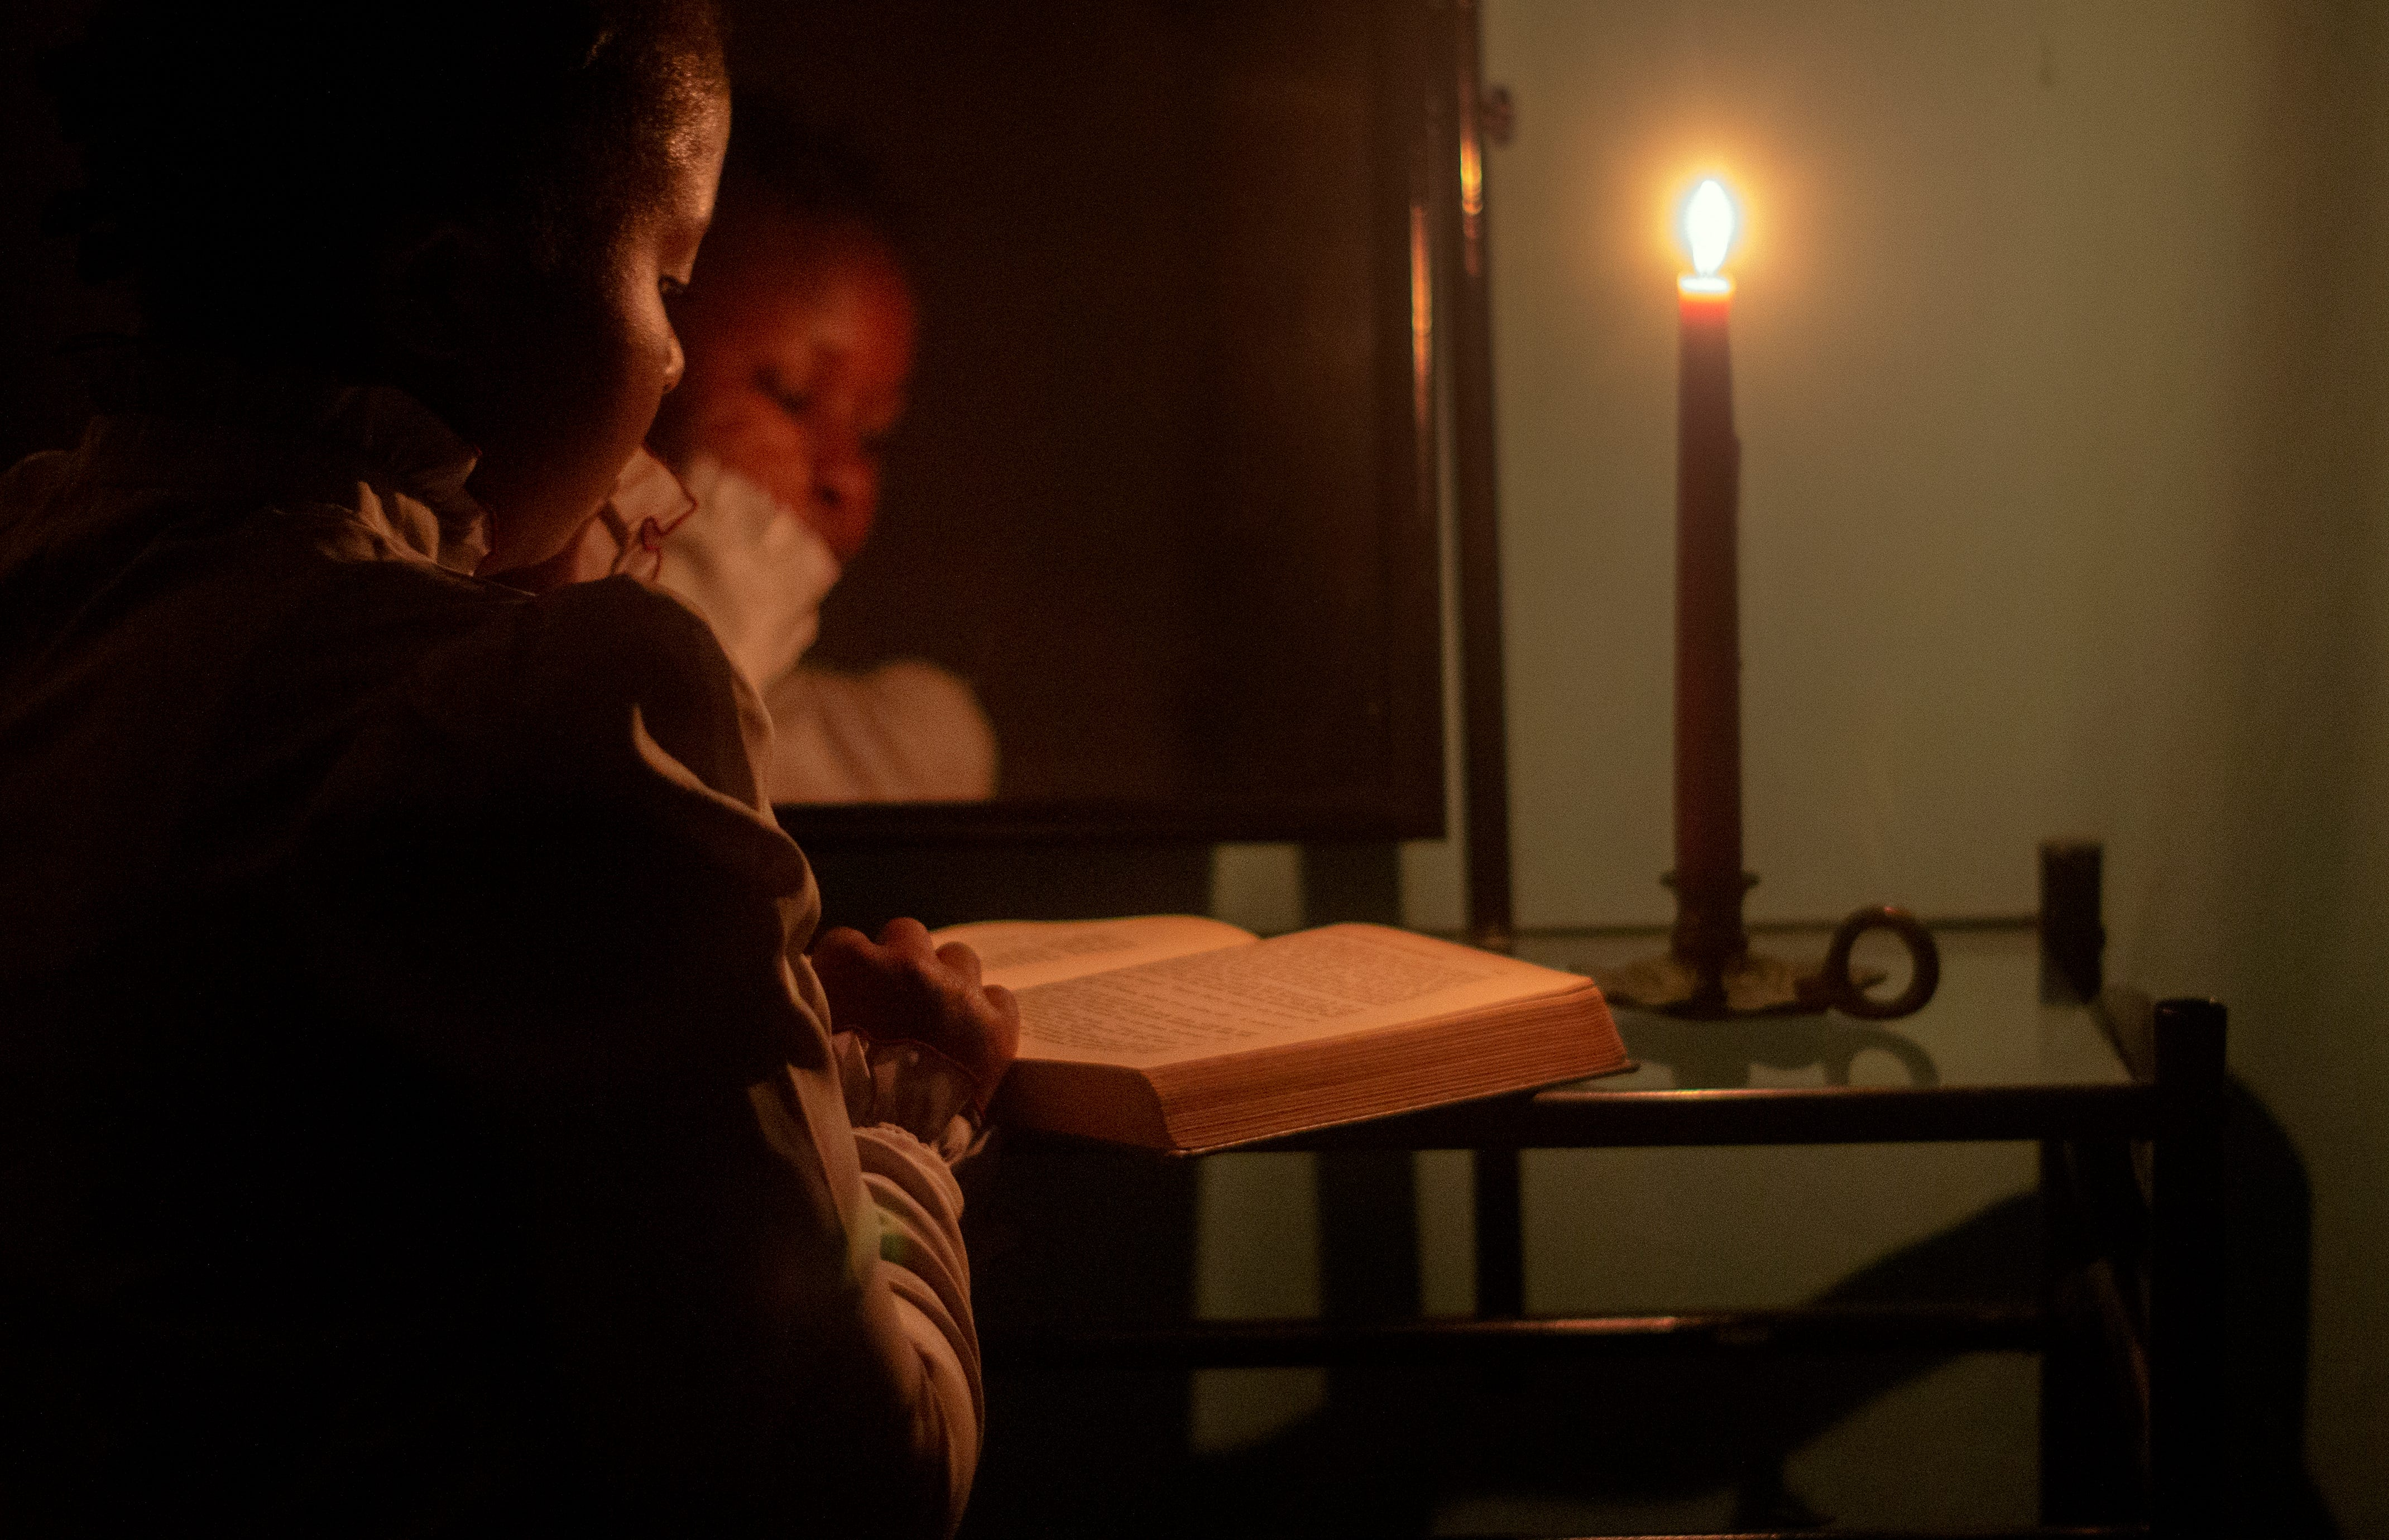 In this self portrait of myself reading Moby Dick by candlelight at my vanity in my bedroom, at home in Detroit on August 31, 2020. I made this image to capture a moment of stillness, serenity and contentment during a time when everything feels unstable and many continue to feel a sense of foreboding.